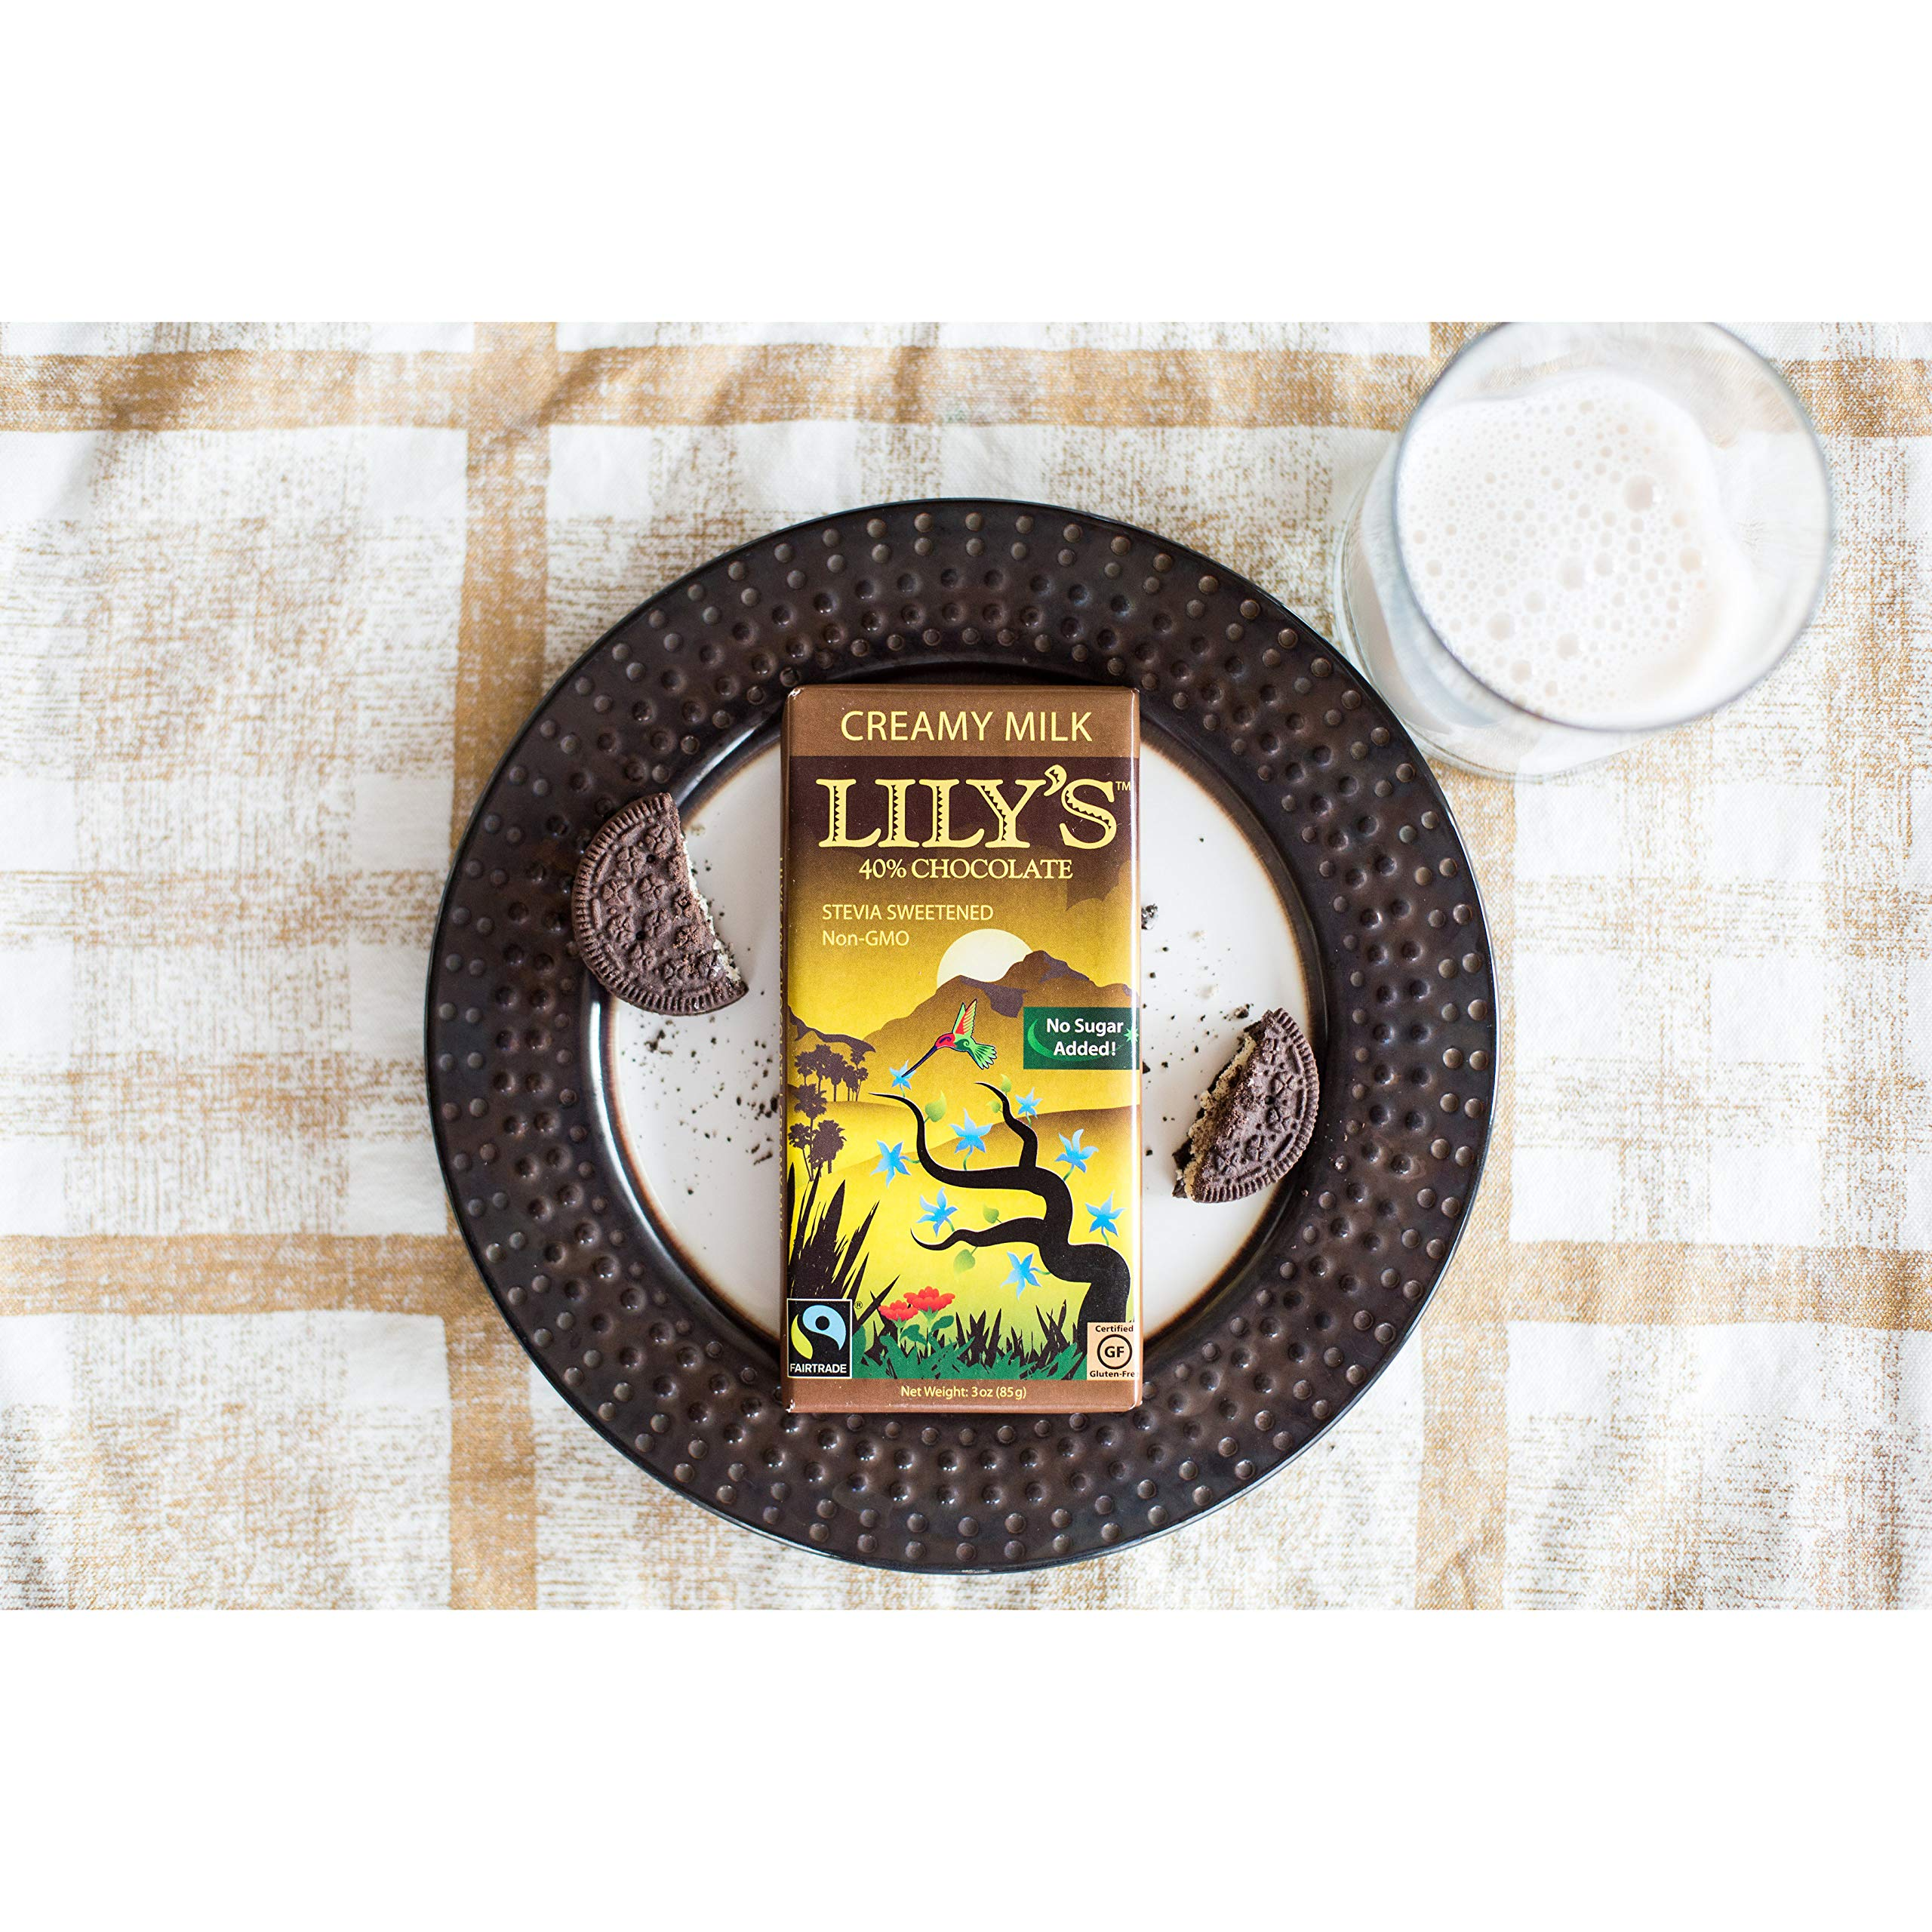 Creamy Milk Chocolate Bar by Lily's Sweets   Stevia Sweetened, No Added Sugar, Low-Carb, Keto Friendly   40% Cacao   Fair Trade, Gluten-Free & Non-GMO   3 ounce, 4-Pack by Lily's (Image #4)